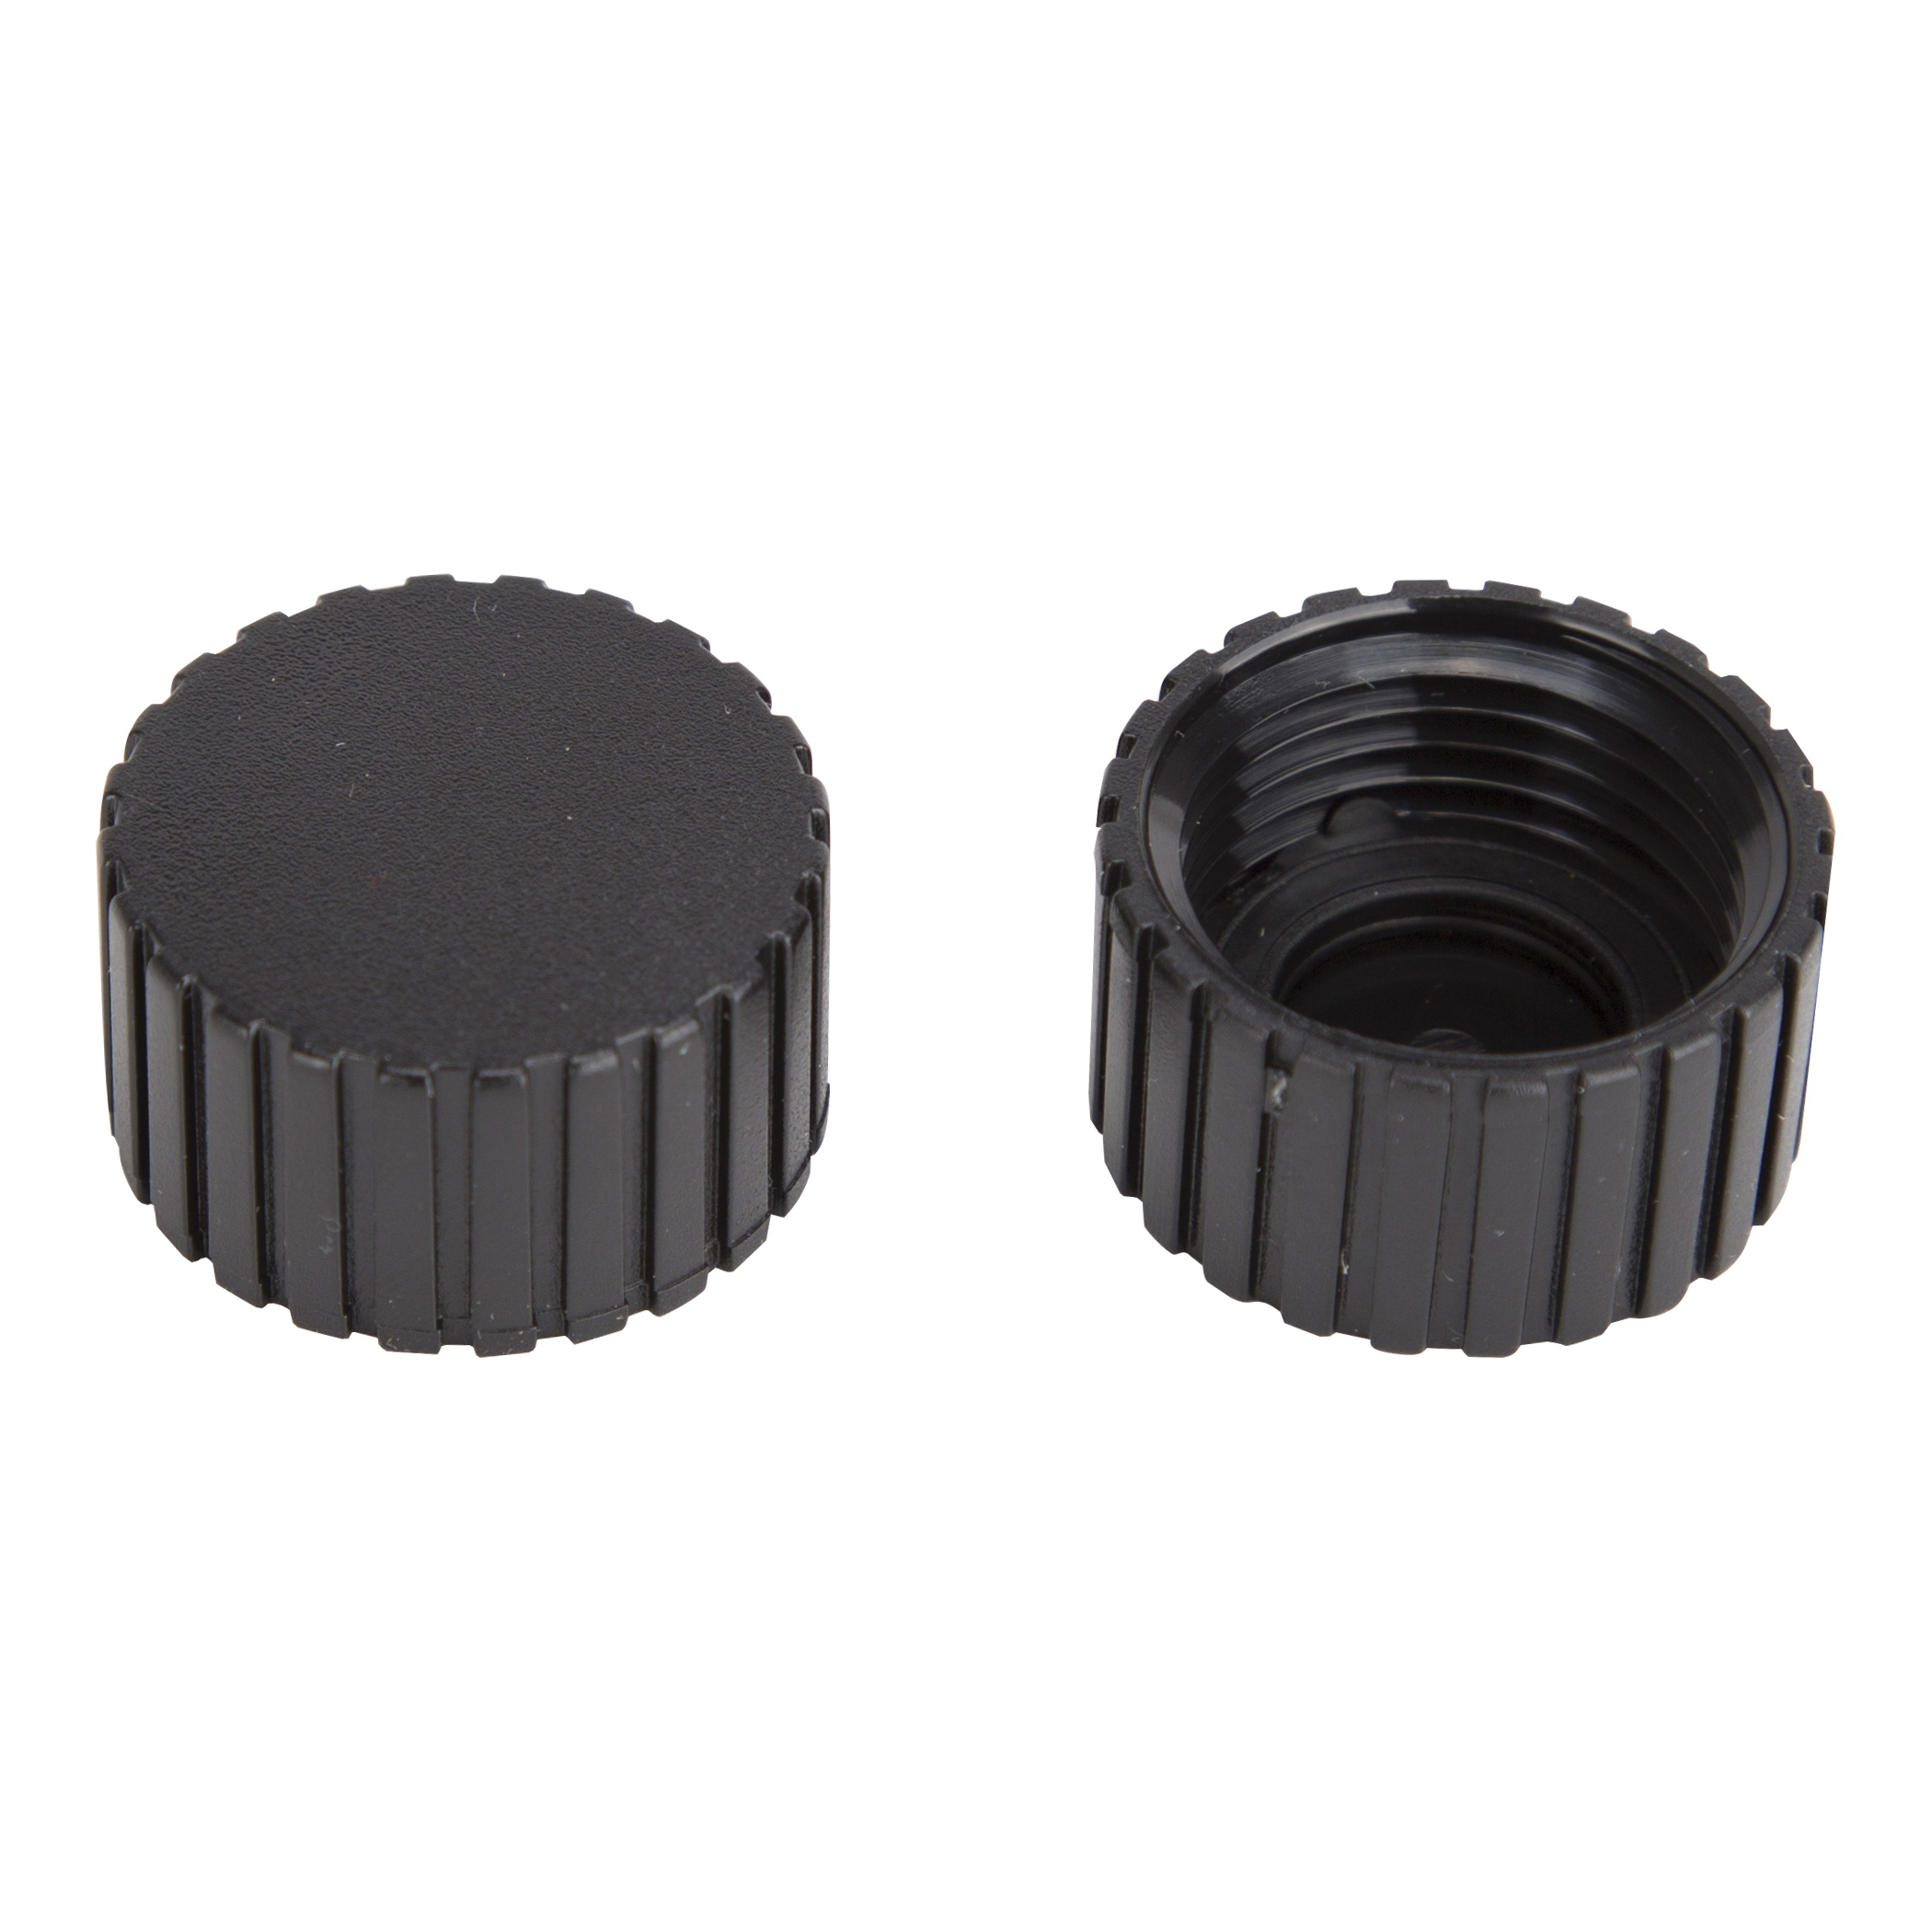 Picture of Landscapers Select GHEC Hose End Cap, 3/4 in, Female, Plastic, Black